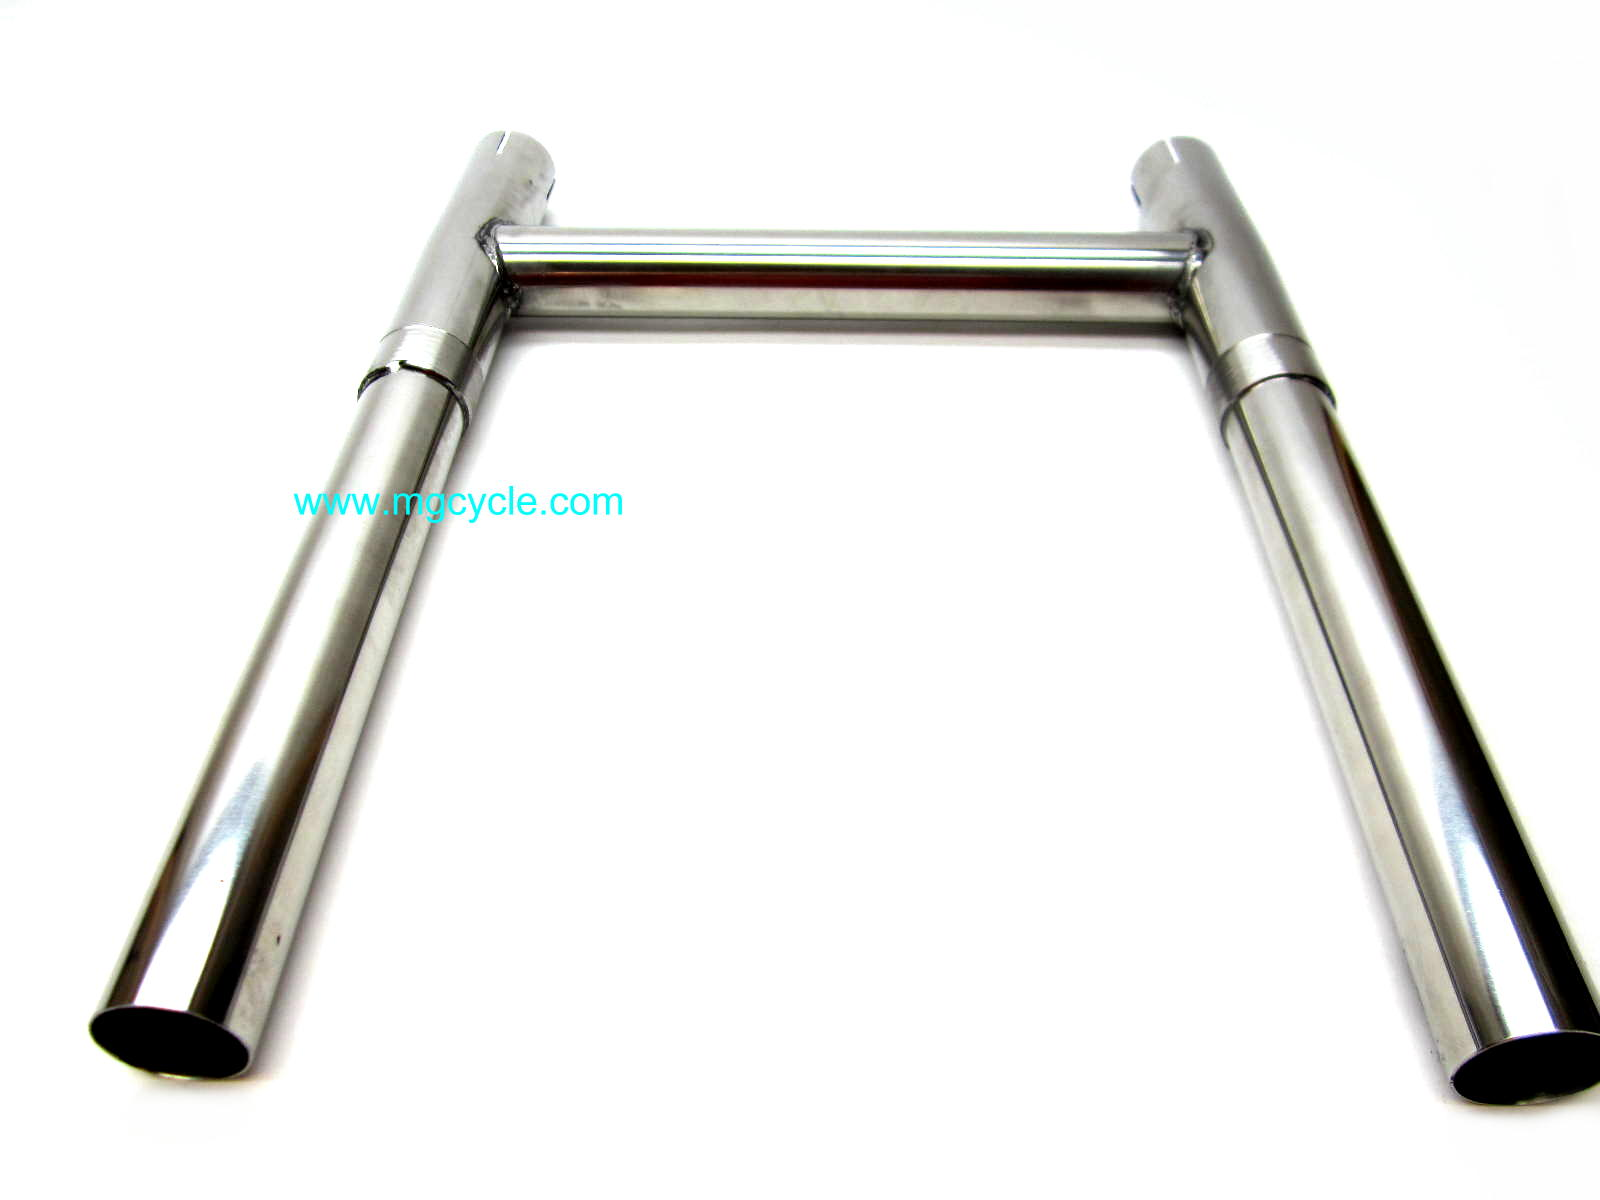 Stainless crossover T T3 G5 Convert